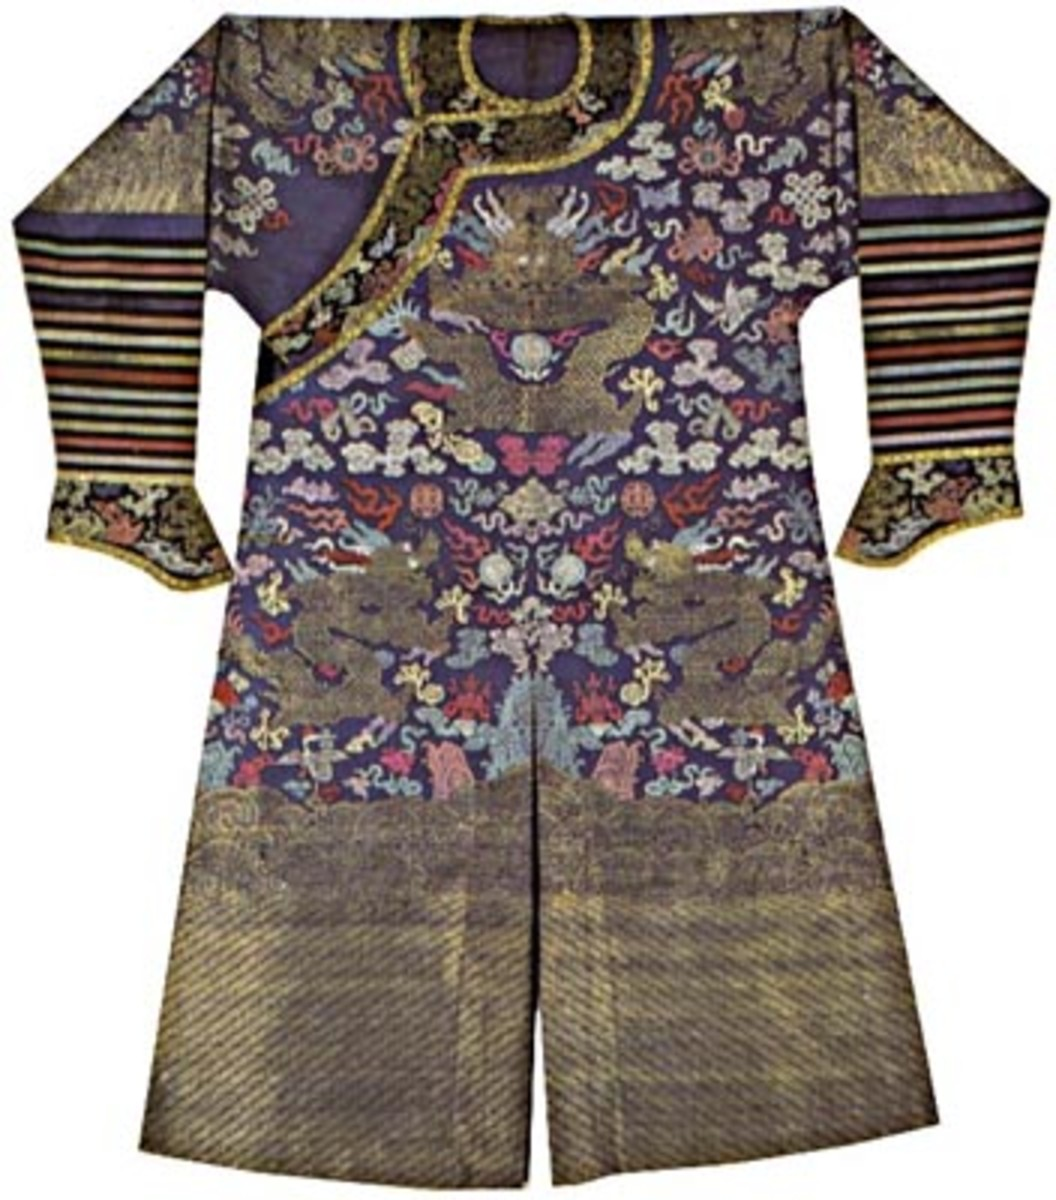 Ancient Chinese garments made of silk